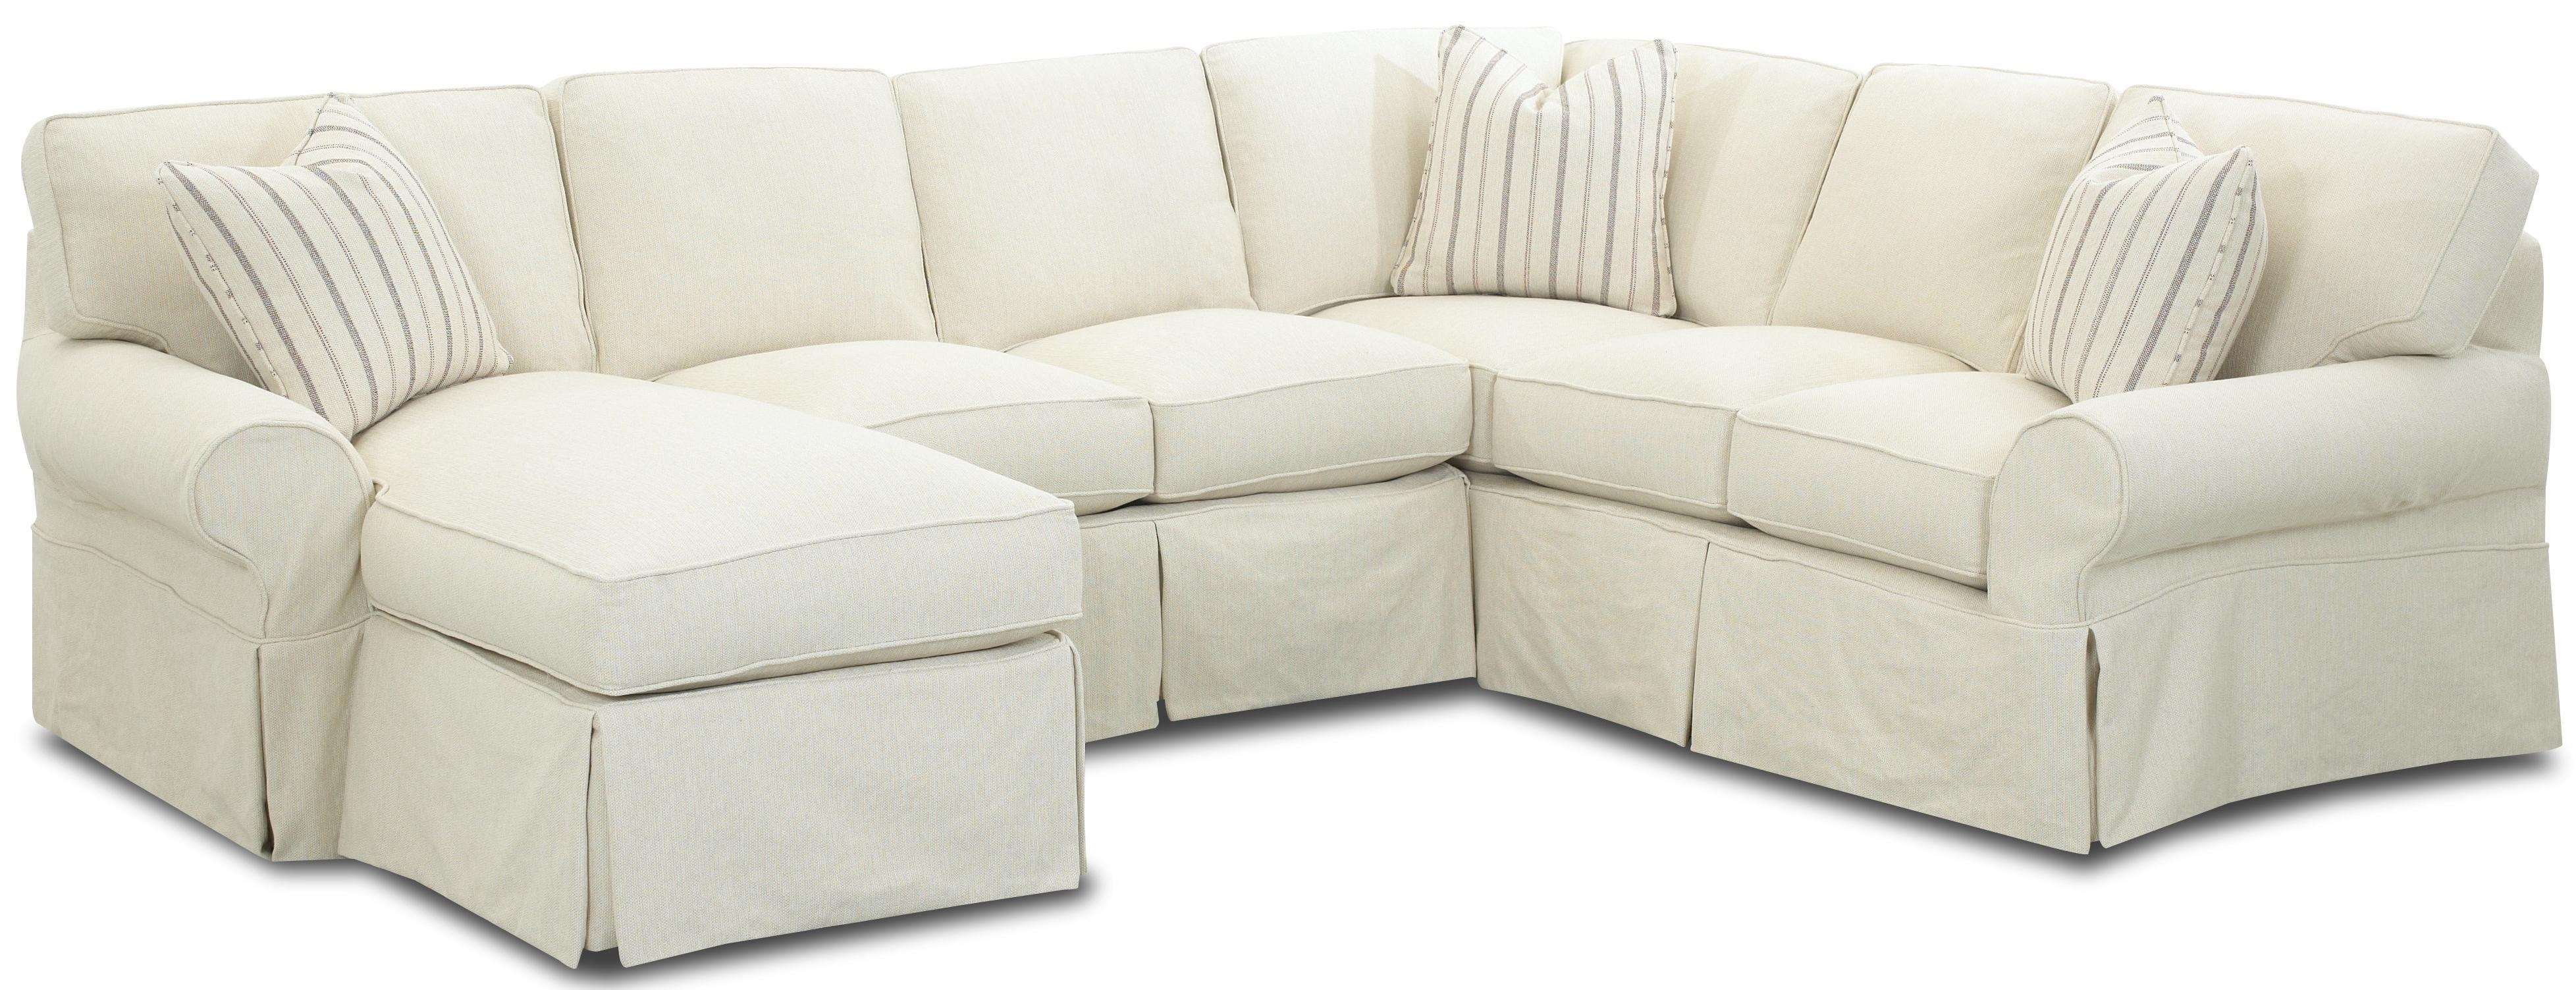 Chaise Sectional Sofa Slipcover | Tehranmix Decoration For Chaise Sectional Slipcover (View 3 of 15)